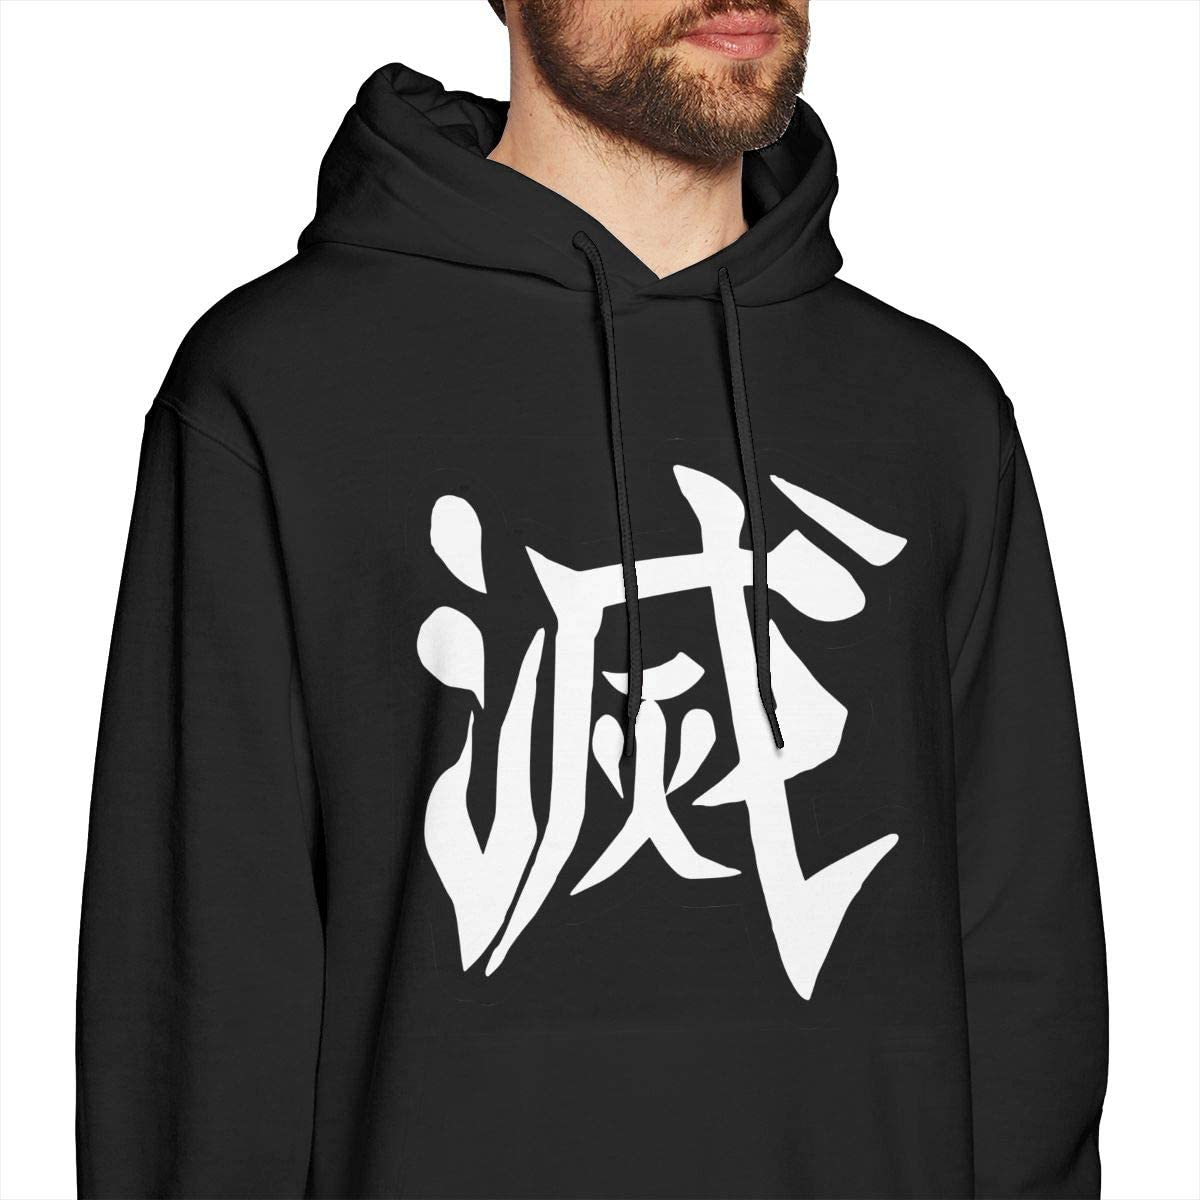 LIAM HENDERSON Demon Slayer Sweatshirts for Men Hoodies Black